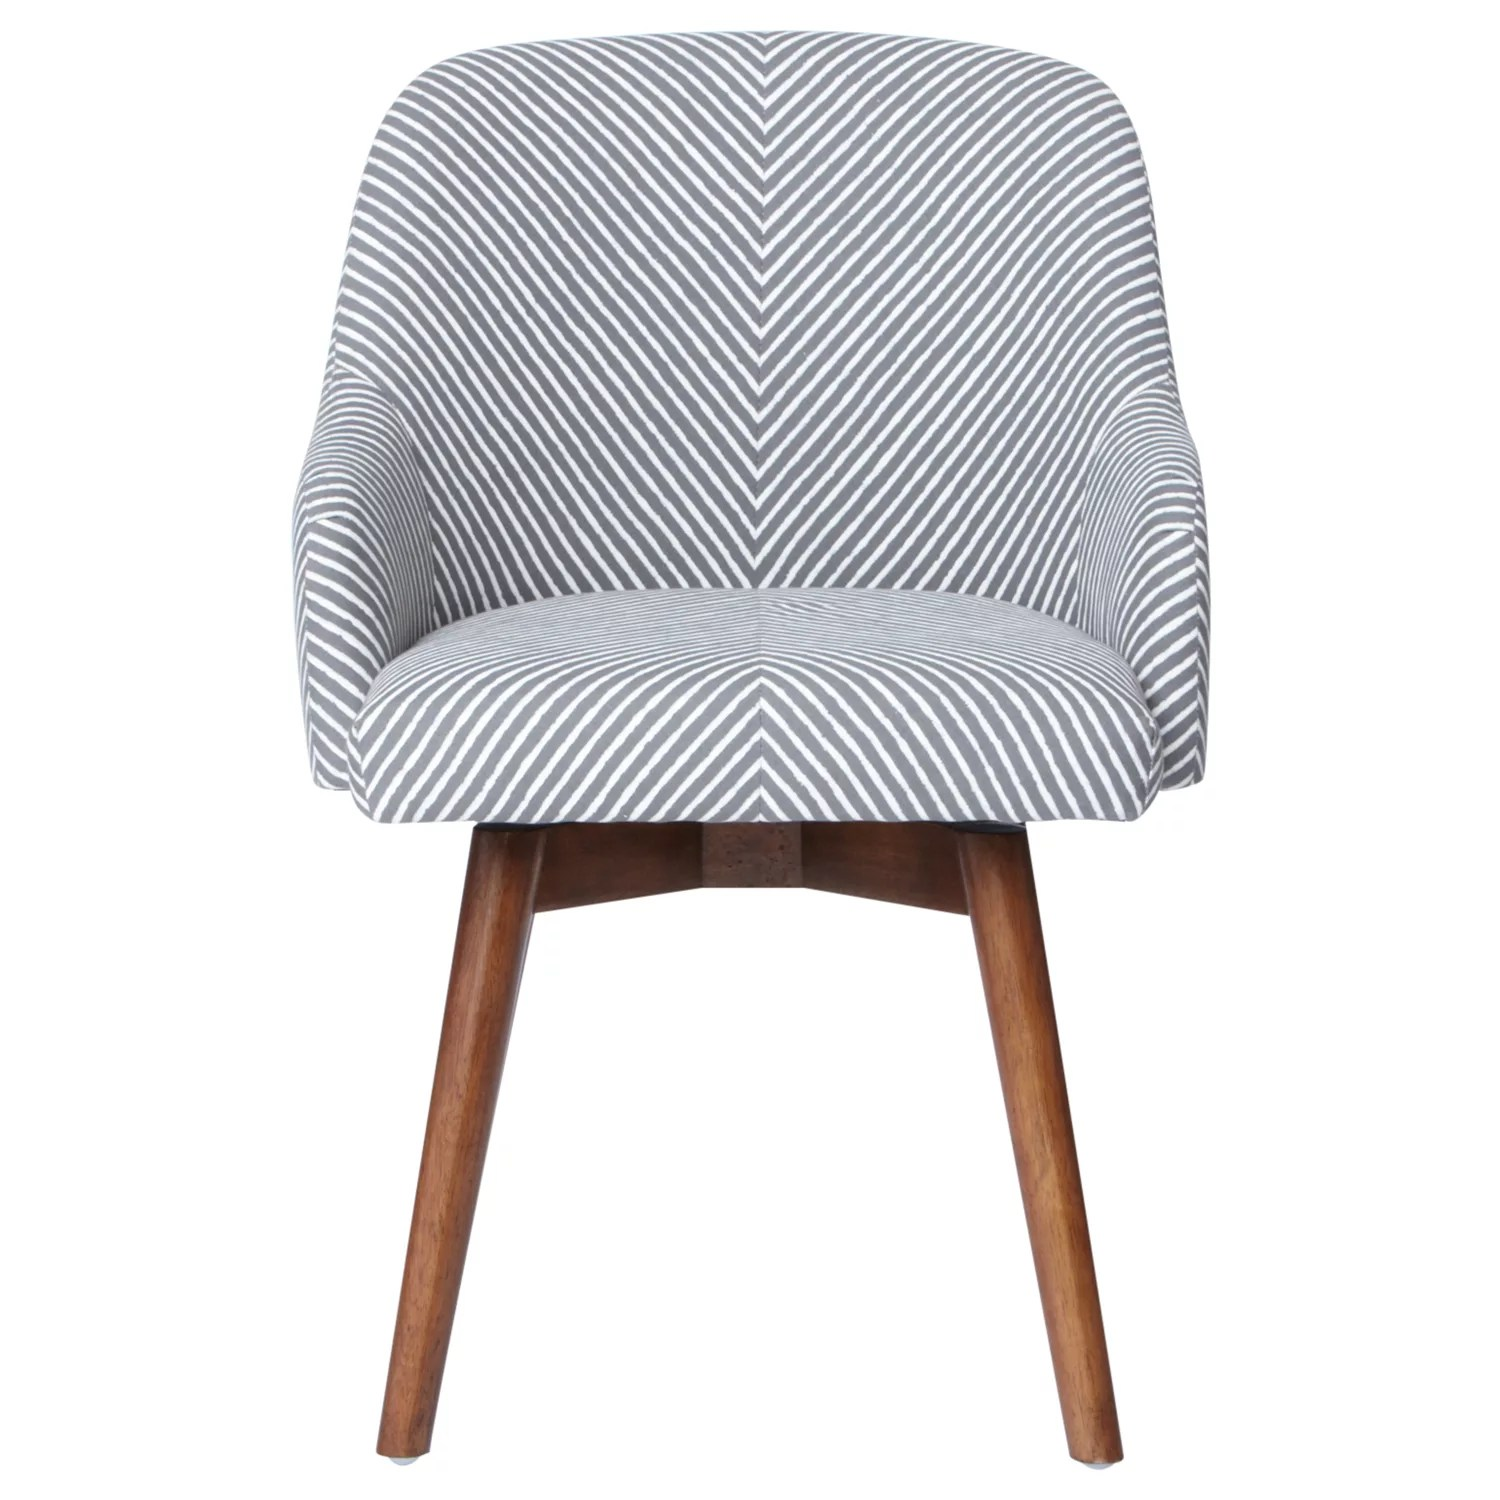 Saddle Office Chair West Elm Saddle Office Chair Painted Stripe Gravel At John Lewis